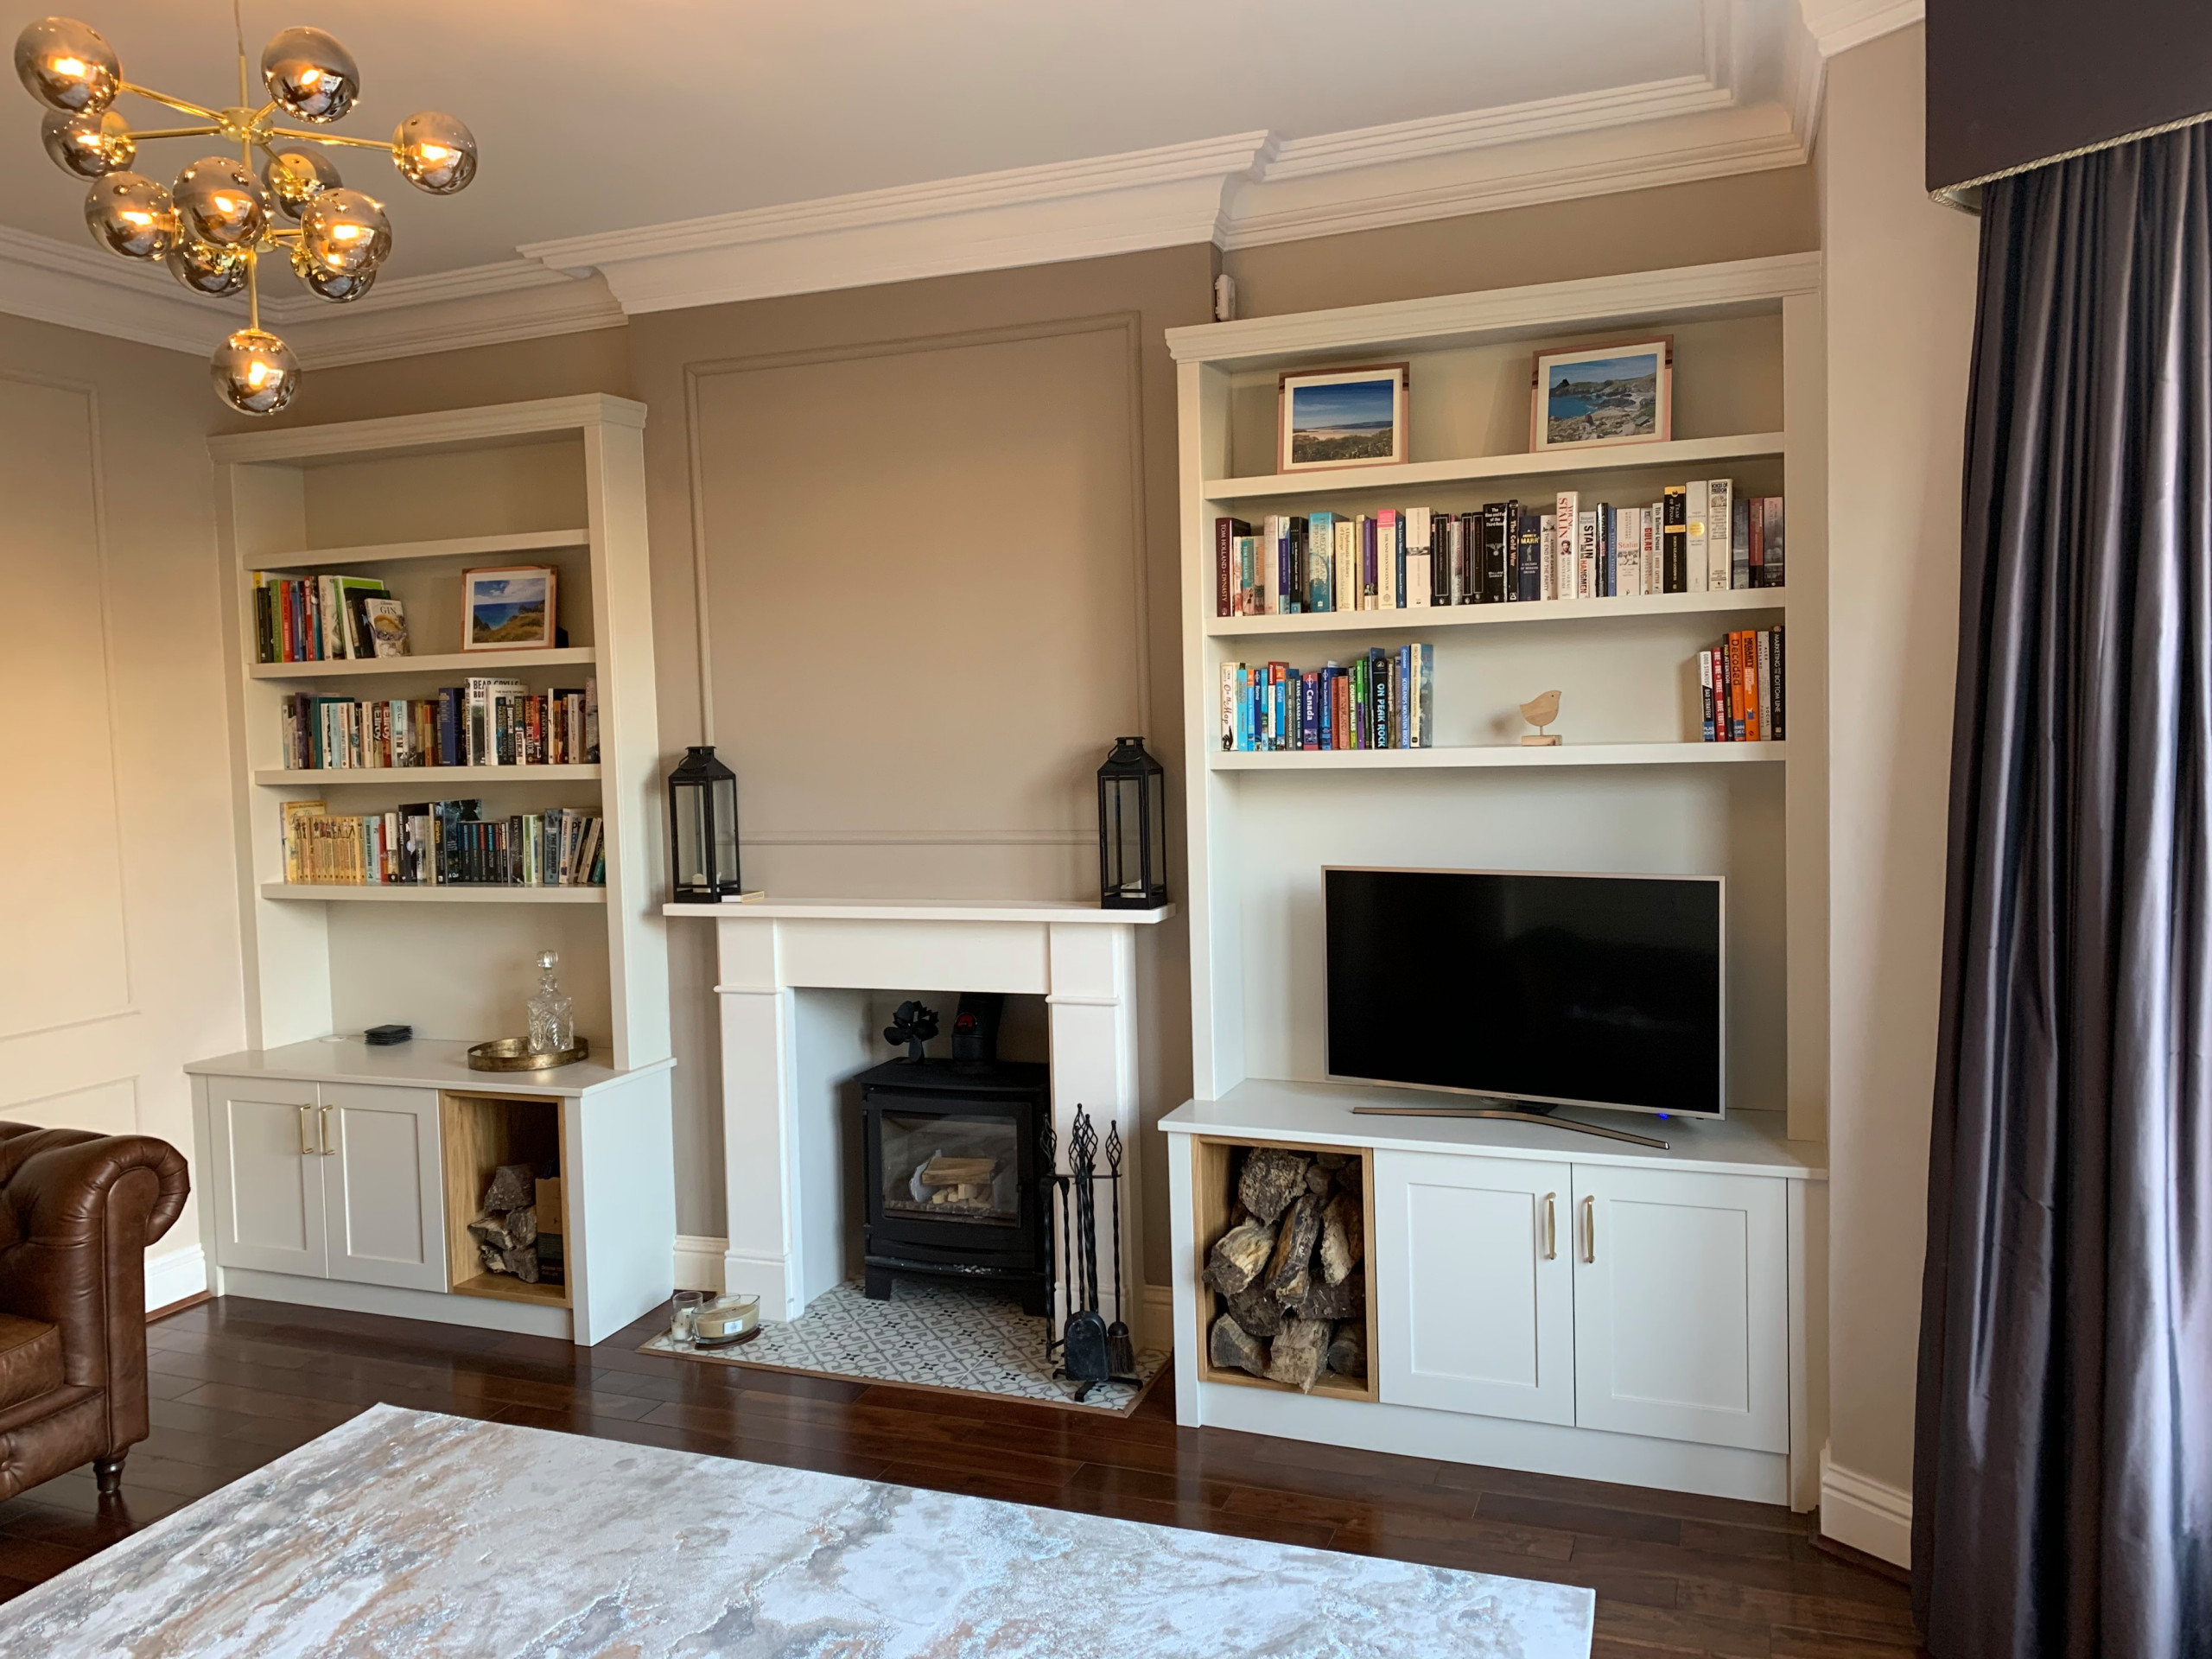 Bespoke Wide Alcove Cabinets with Log Storage and Lighting